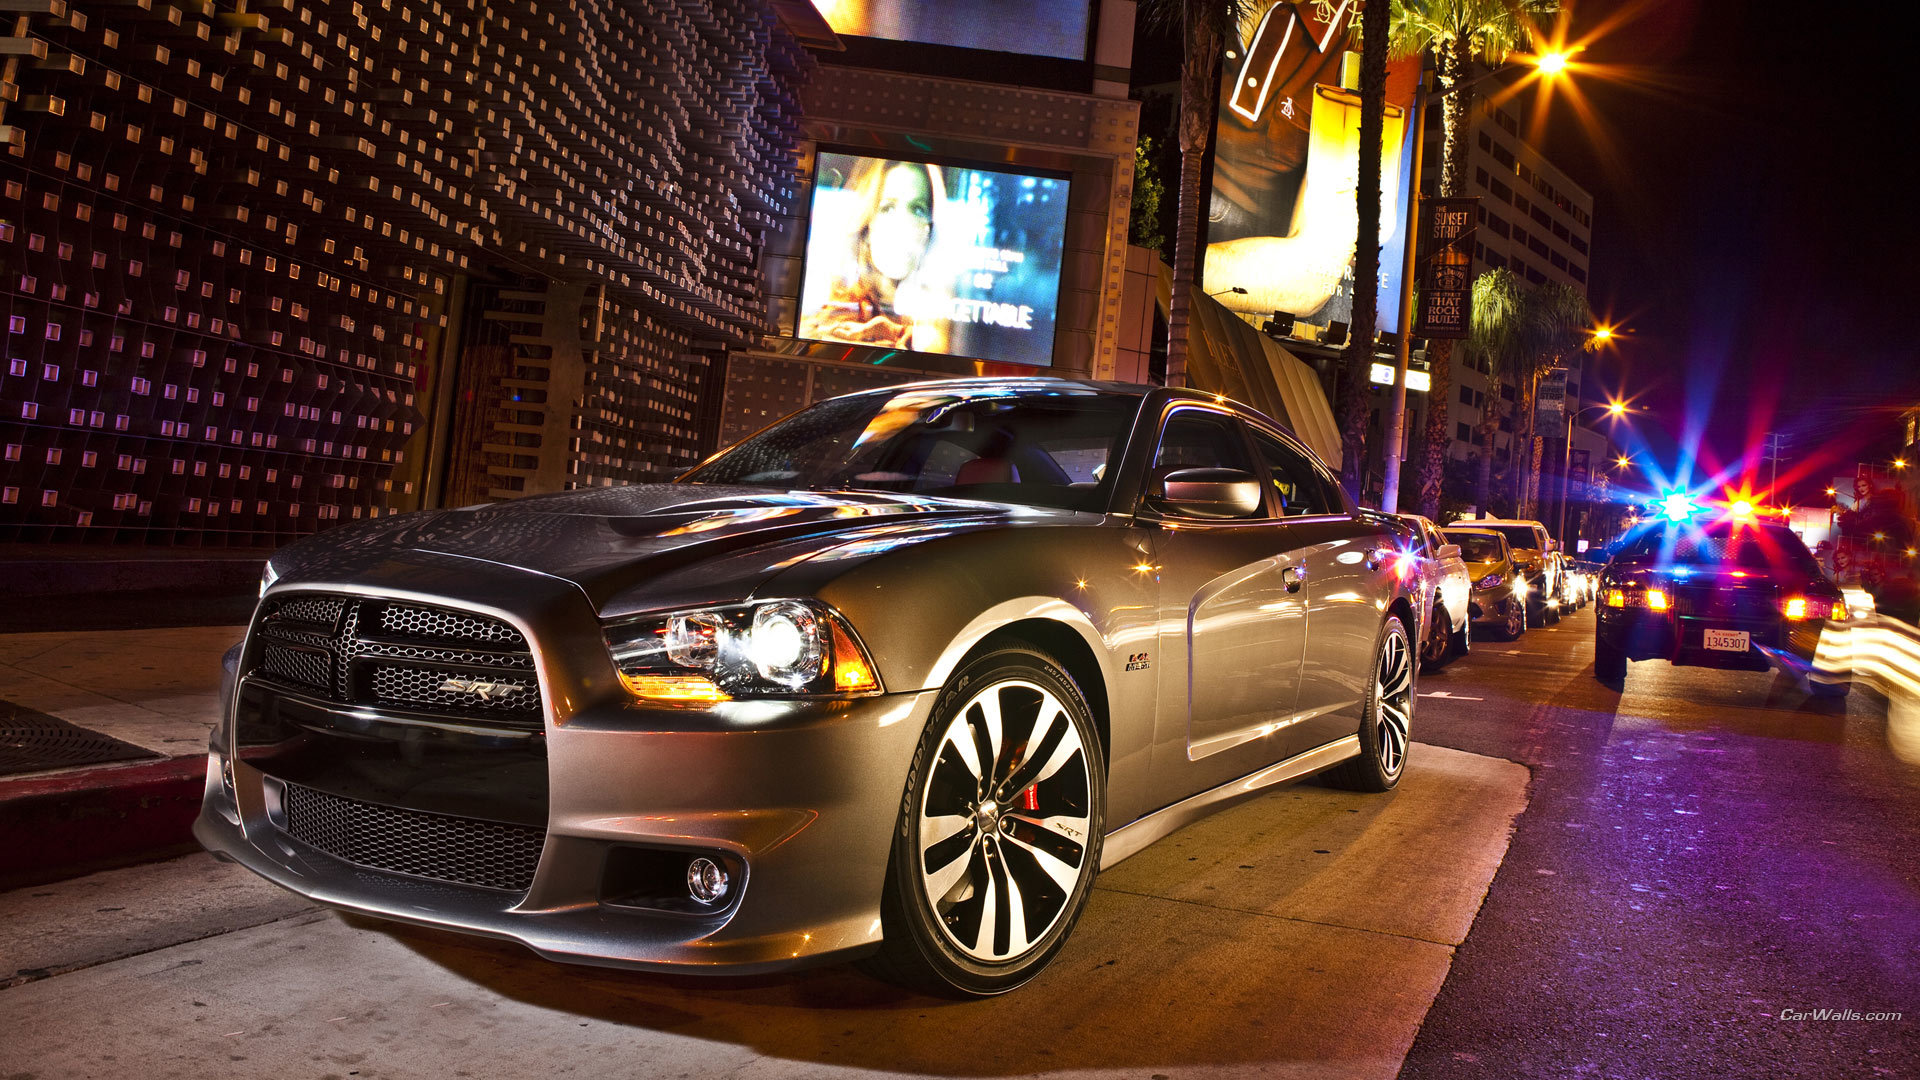 Awesome Dodge Charger Srt8 free wallpaper ID:277911 for hd 1920x1080 desktop